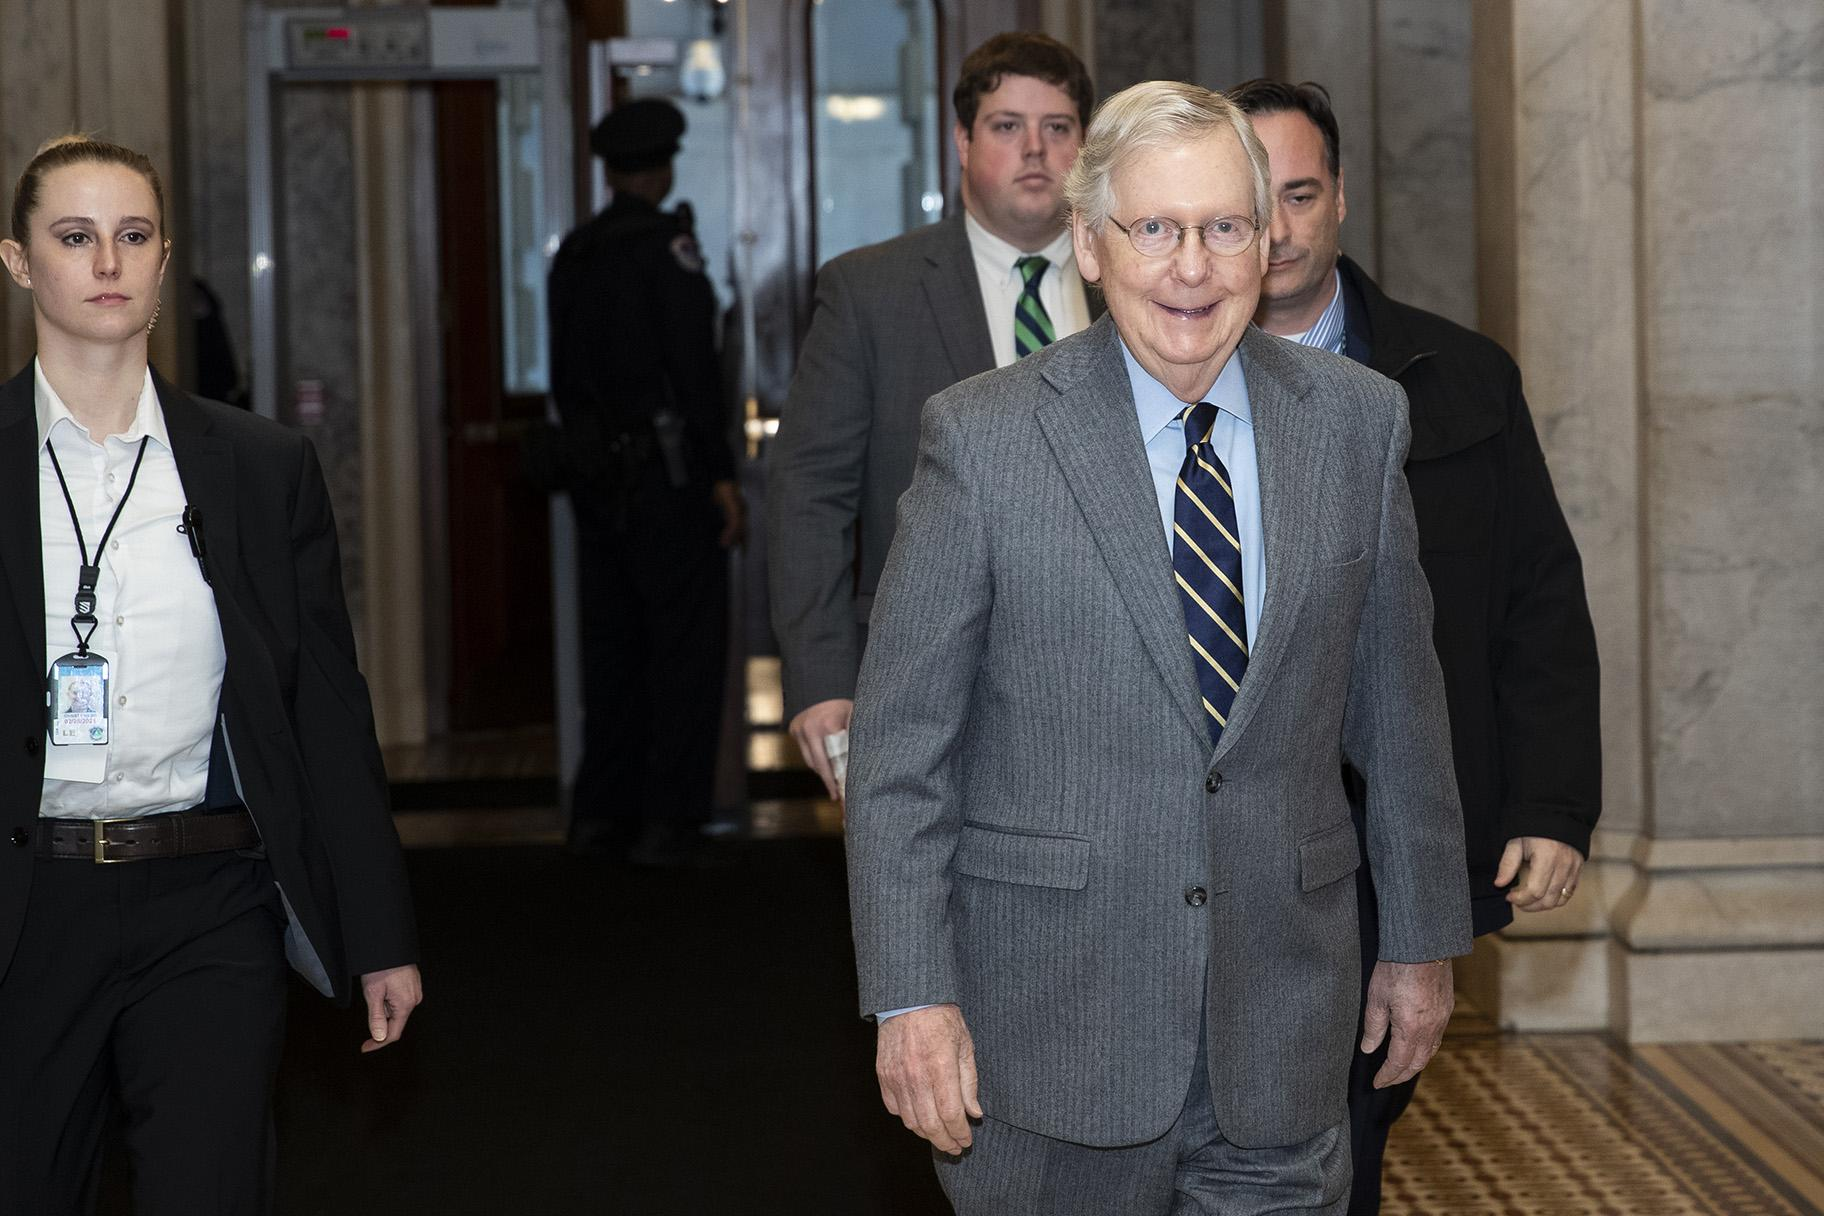 Senate Majority Leader Mitch McConnell of Kentucky, arrives on Capitol Hill, Monday, Feb. 3, 2020 in Washington. (AP Photo / Alex Brandon)